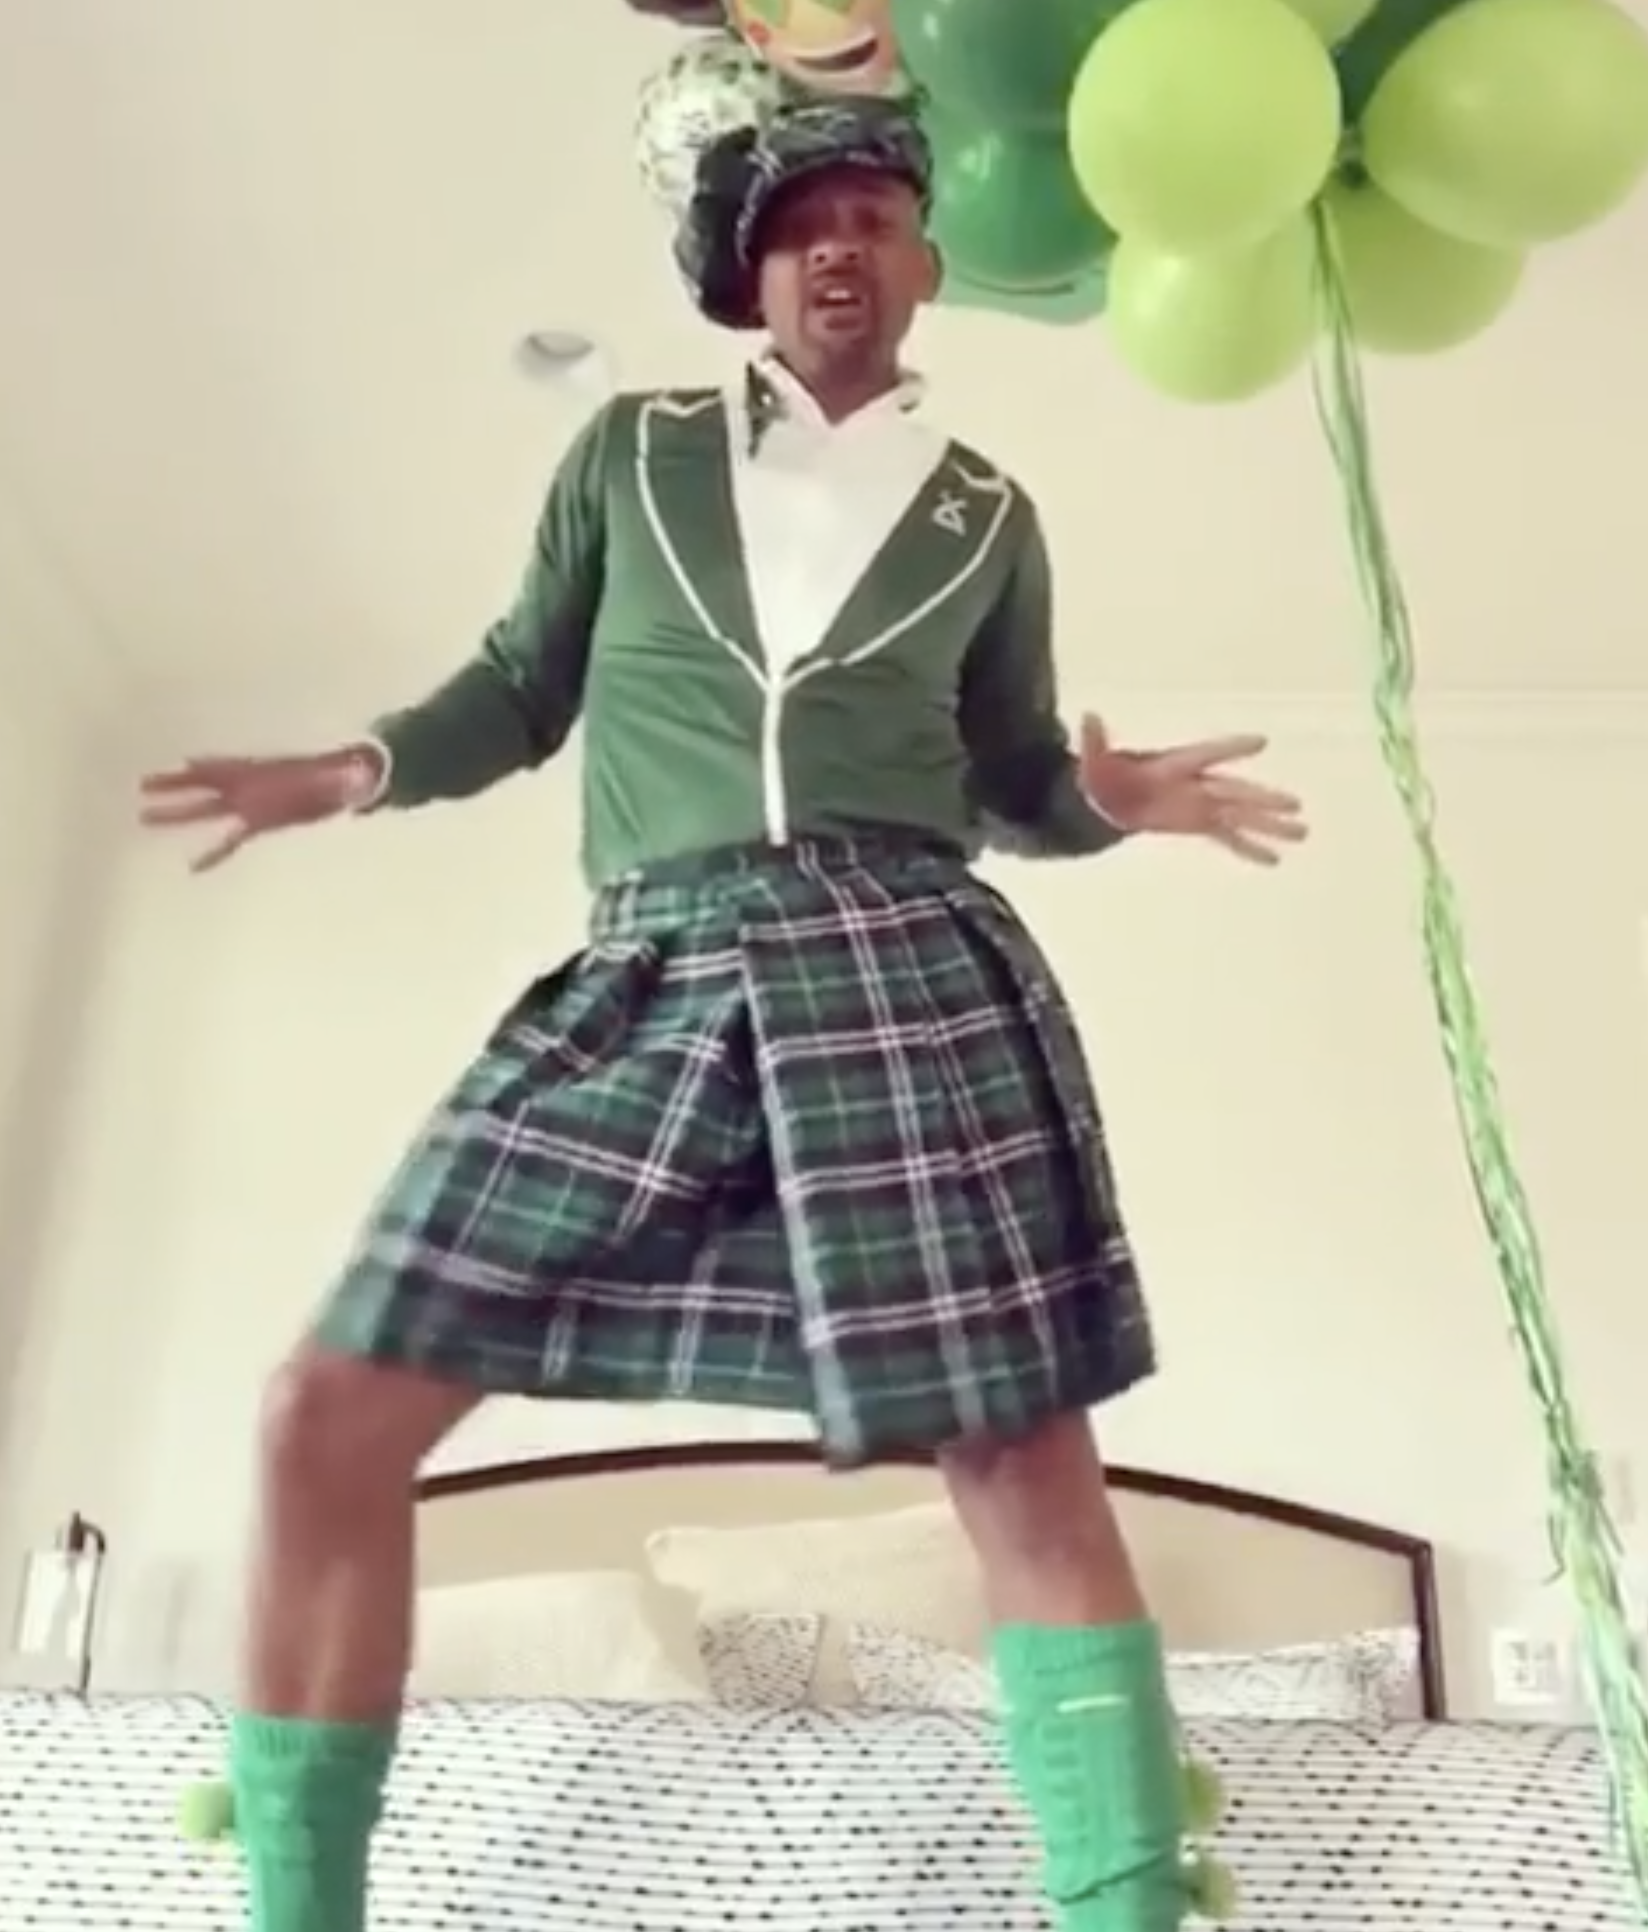 """I just saw my post from last year... smh... My Bad.""   Will Smith, who posted this video on Instagram on March 17, 2019    the same thing he posted on St. Patrick's Day the previous year"